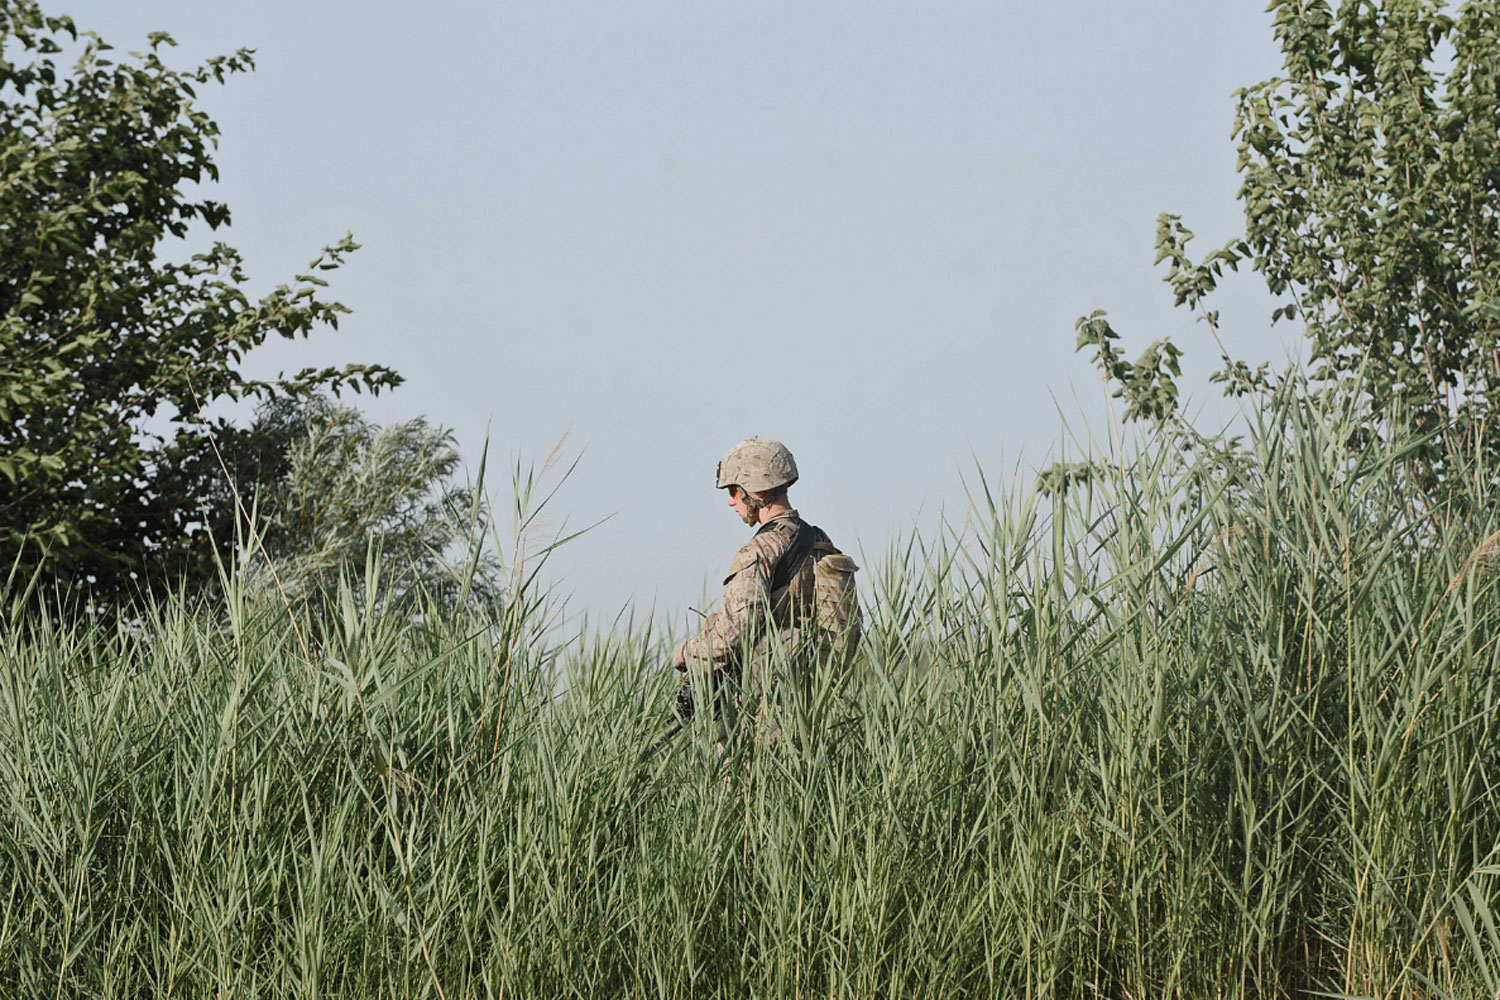 May 25, 2011. A U.S. Marine from 3rd Battalion 9th Marines Kodiak Company walks to his patrol base in Block 9th of Marjah district in Helmand Province, Afghanistan.